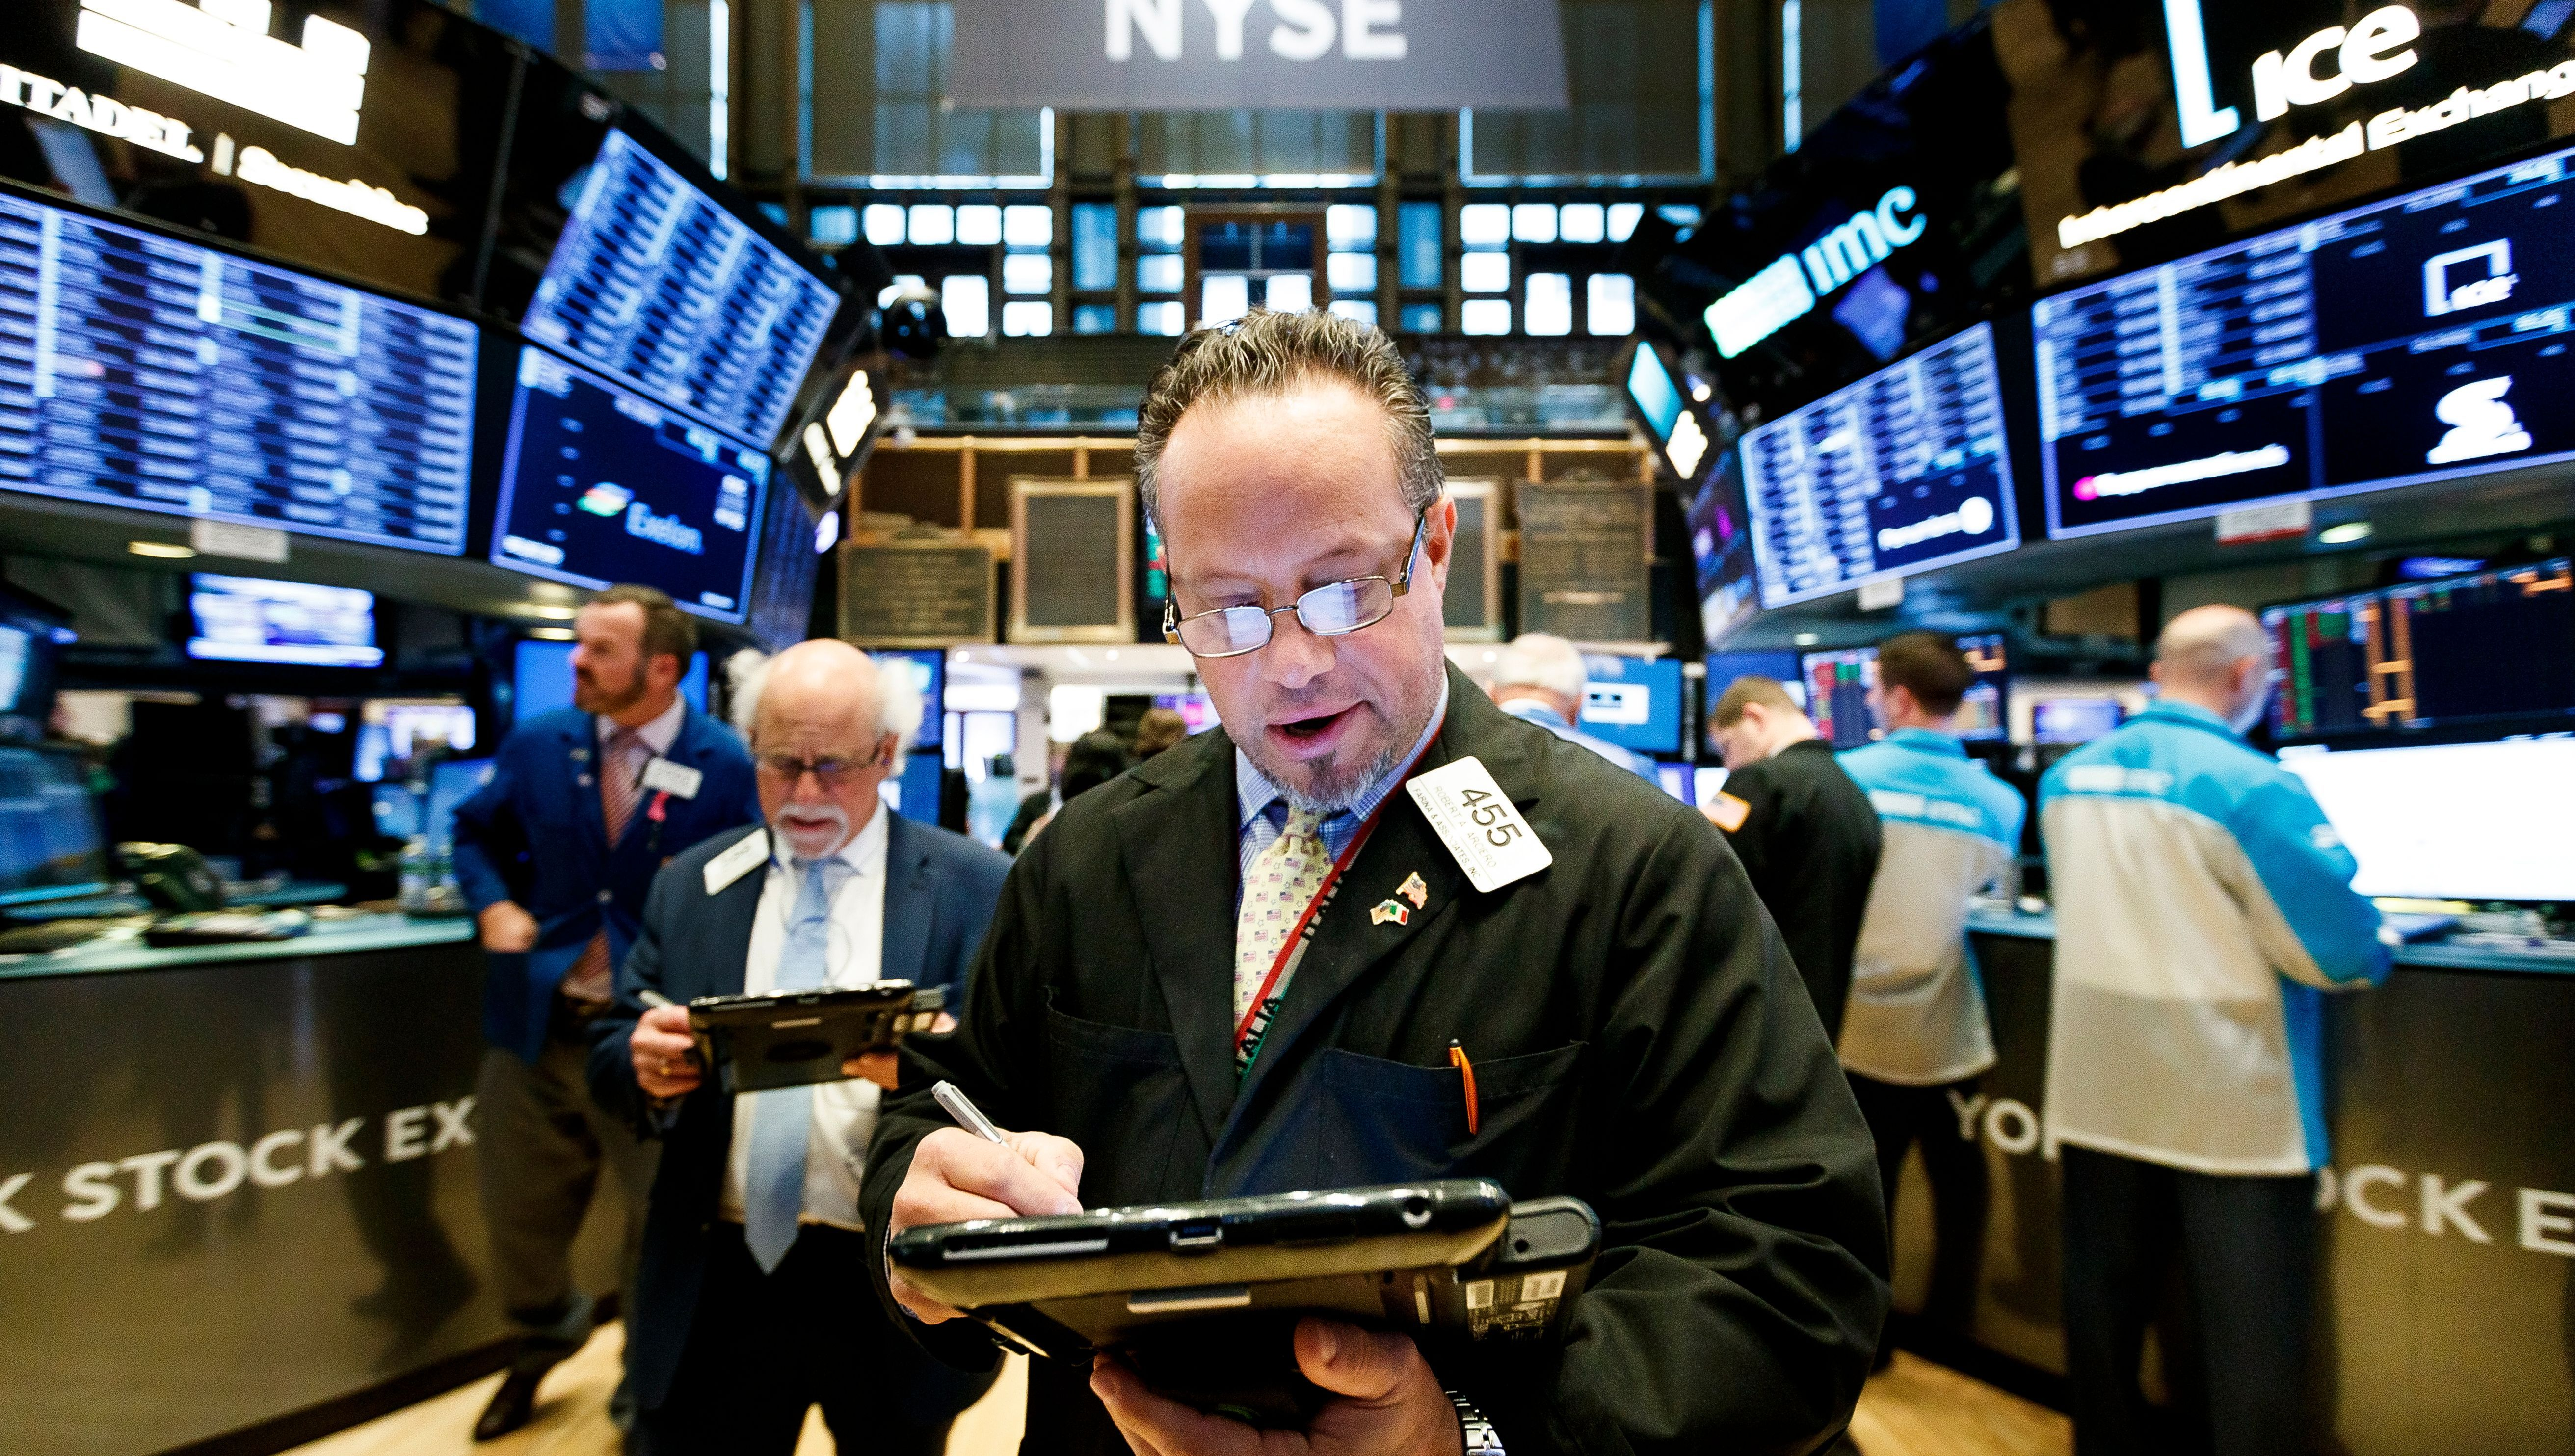 Stock Market Is Open For Full Day Of Trading New Years Eve But Closed Jan 1 For New Years Day Stock Market New Year S Day Marketing